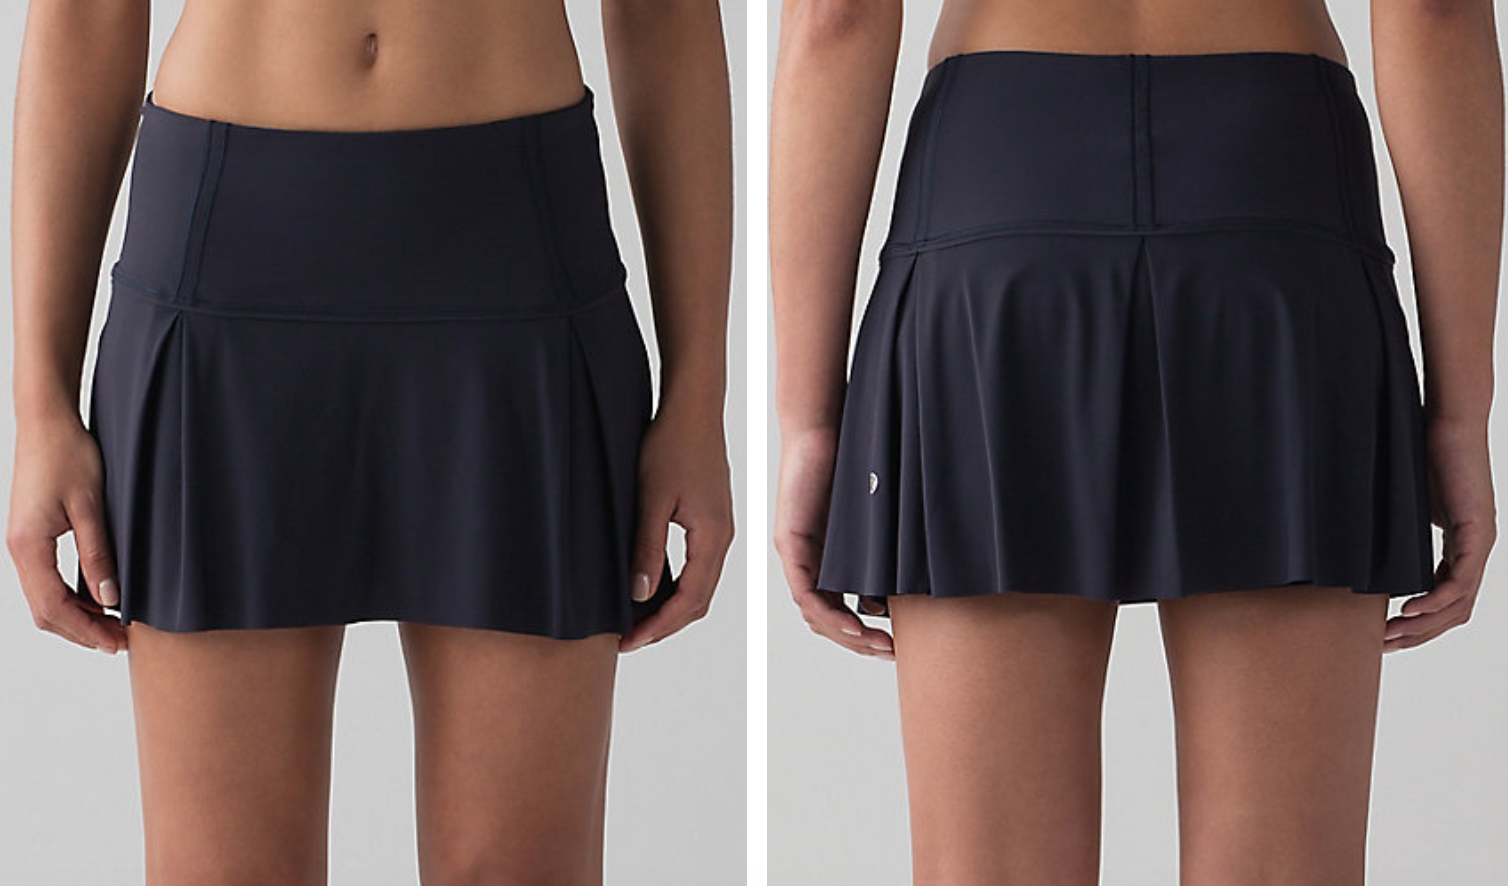 https://api.shopstyle.com/action/apiVisitRetailer?url=https%3A%2F%2Fshop.lululemon.com%2Fp%2Fskirts-and-dresses-skirts%2FLost-In-Pace-Skirt%2F_%2Fprod8431492%3Frcnt%3D14%26N%3D1z13ziiZ7z5%26cnt%3D52%26color%3DLW8772R_028694&site=www.shopstyle.ca&pid=uid6784-25288972-7